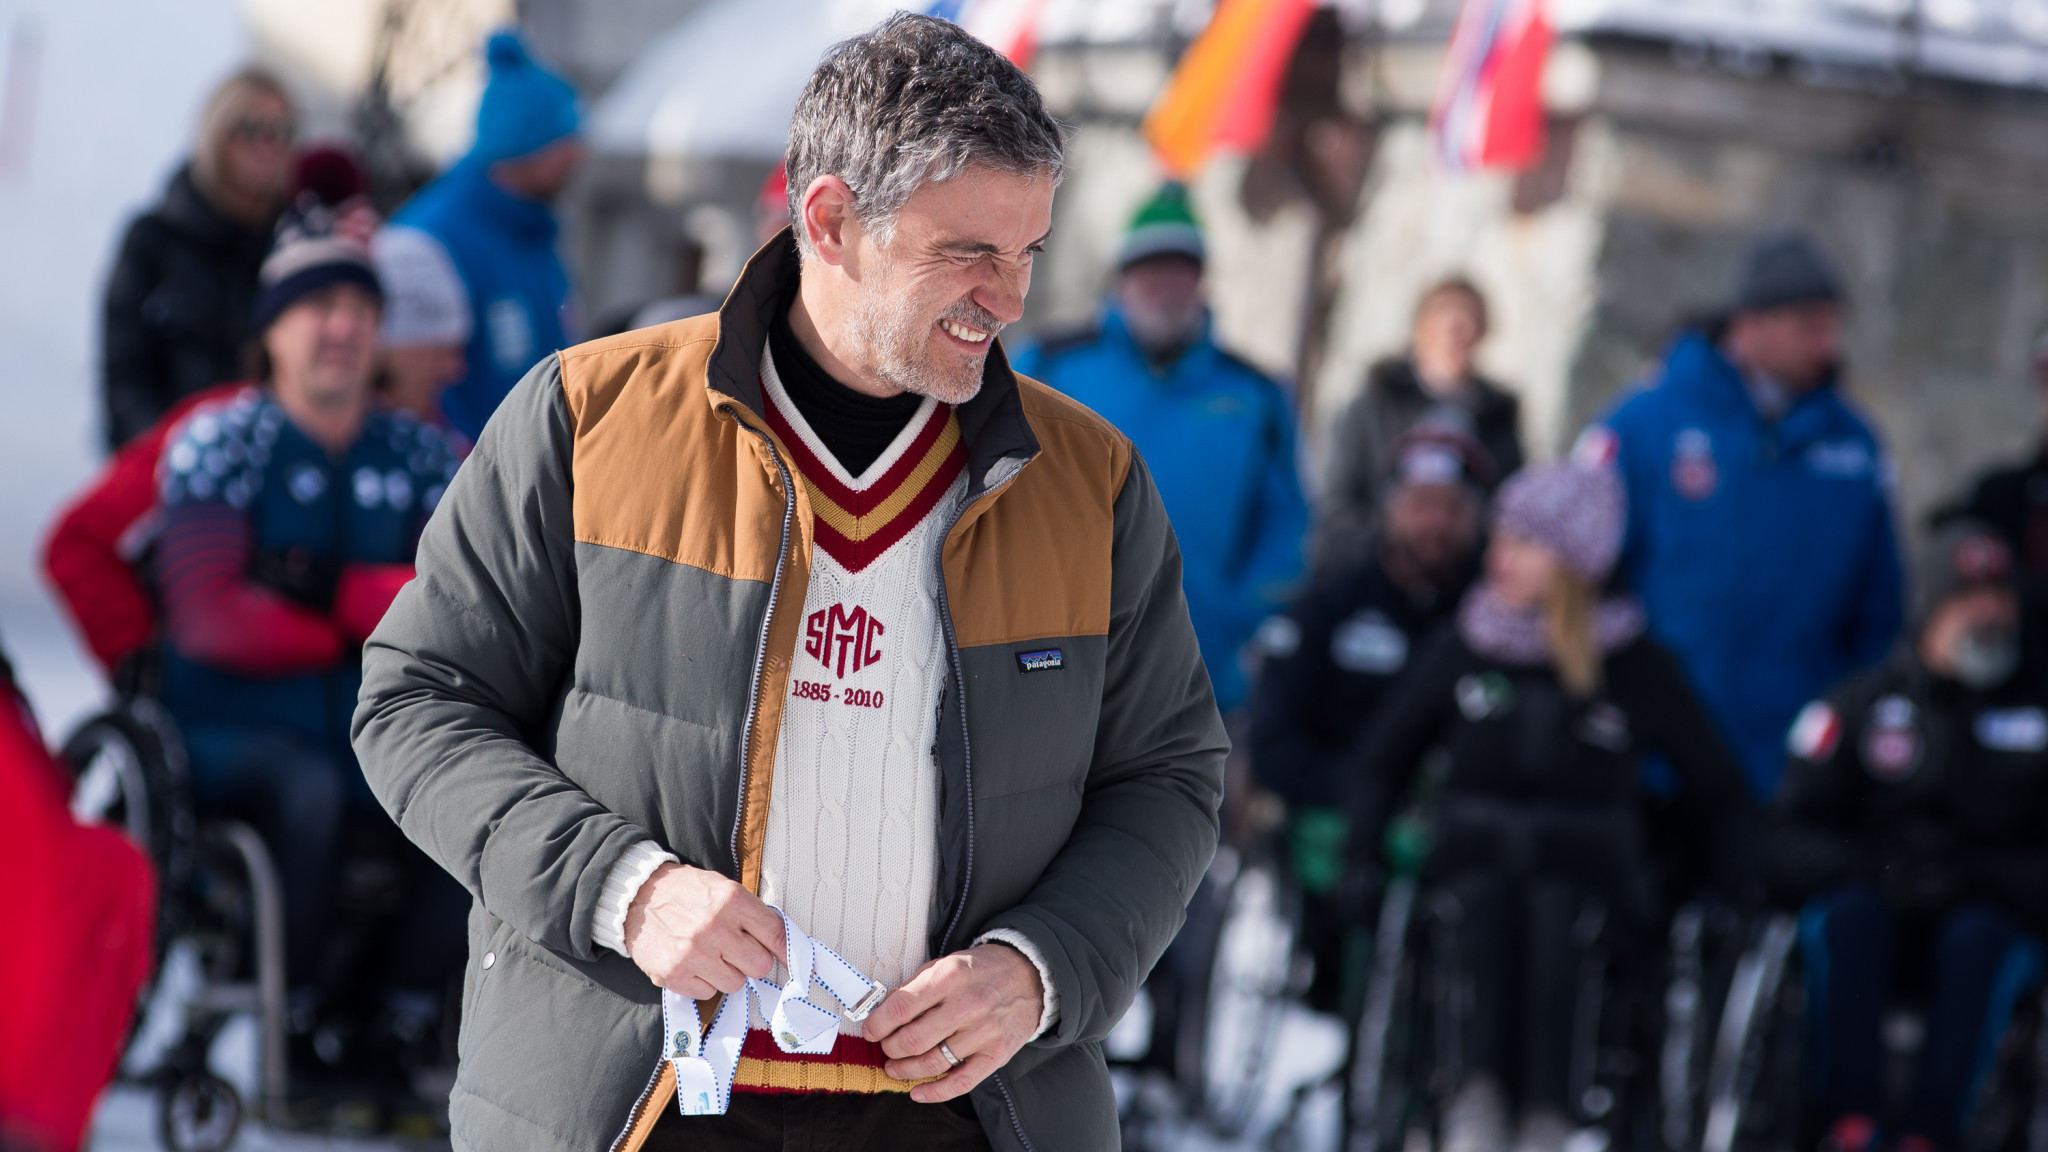 Fritz Burkard is also seeking election as President of the IBSF ©Fritz Burkard